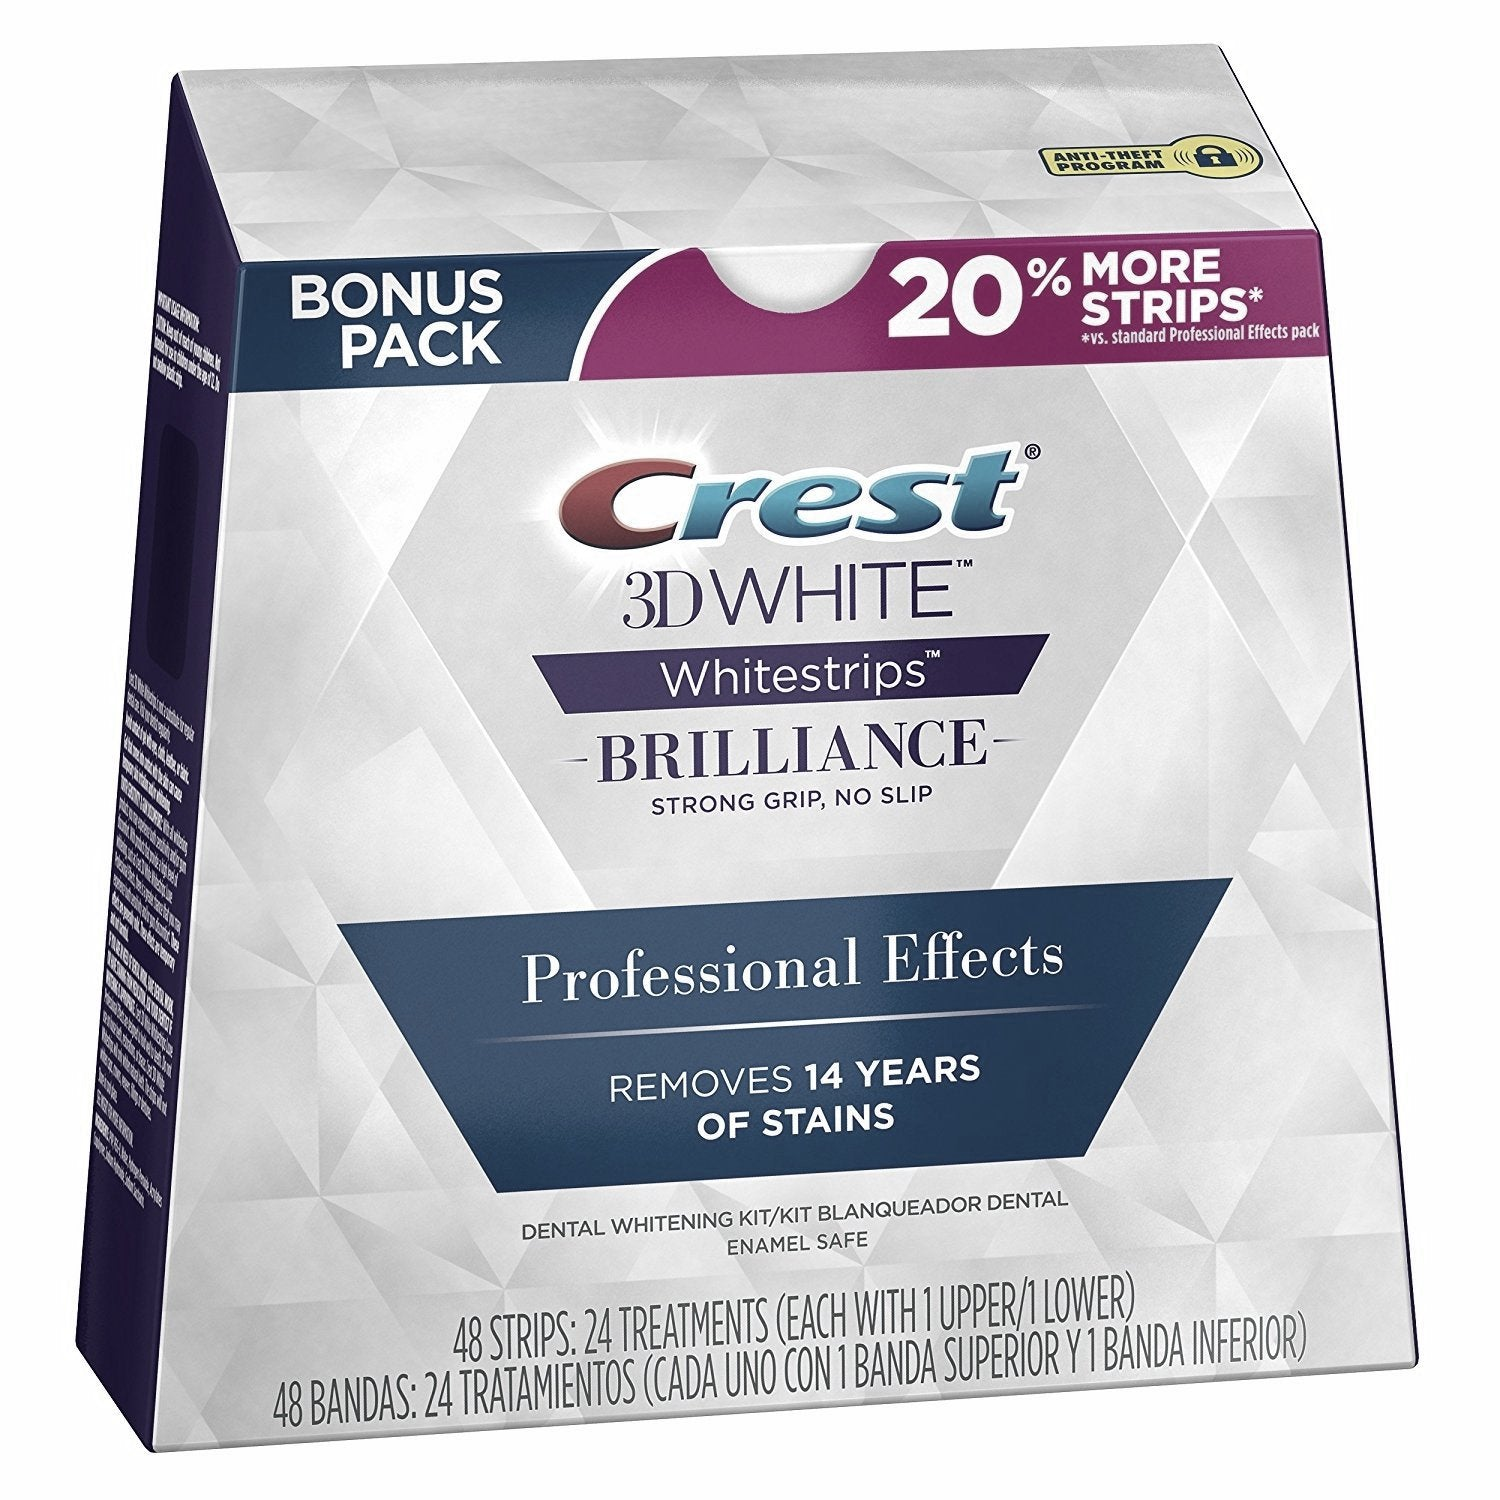 Crest whitening whitestrips kit